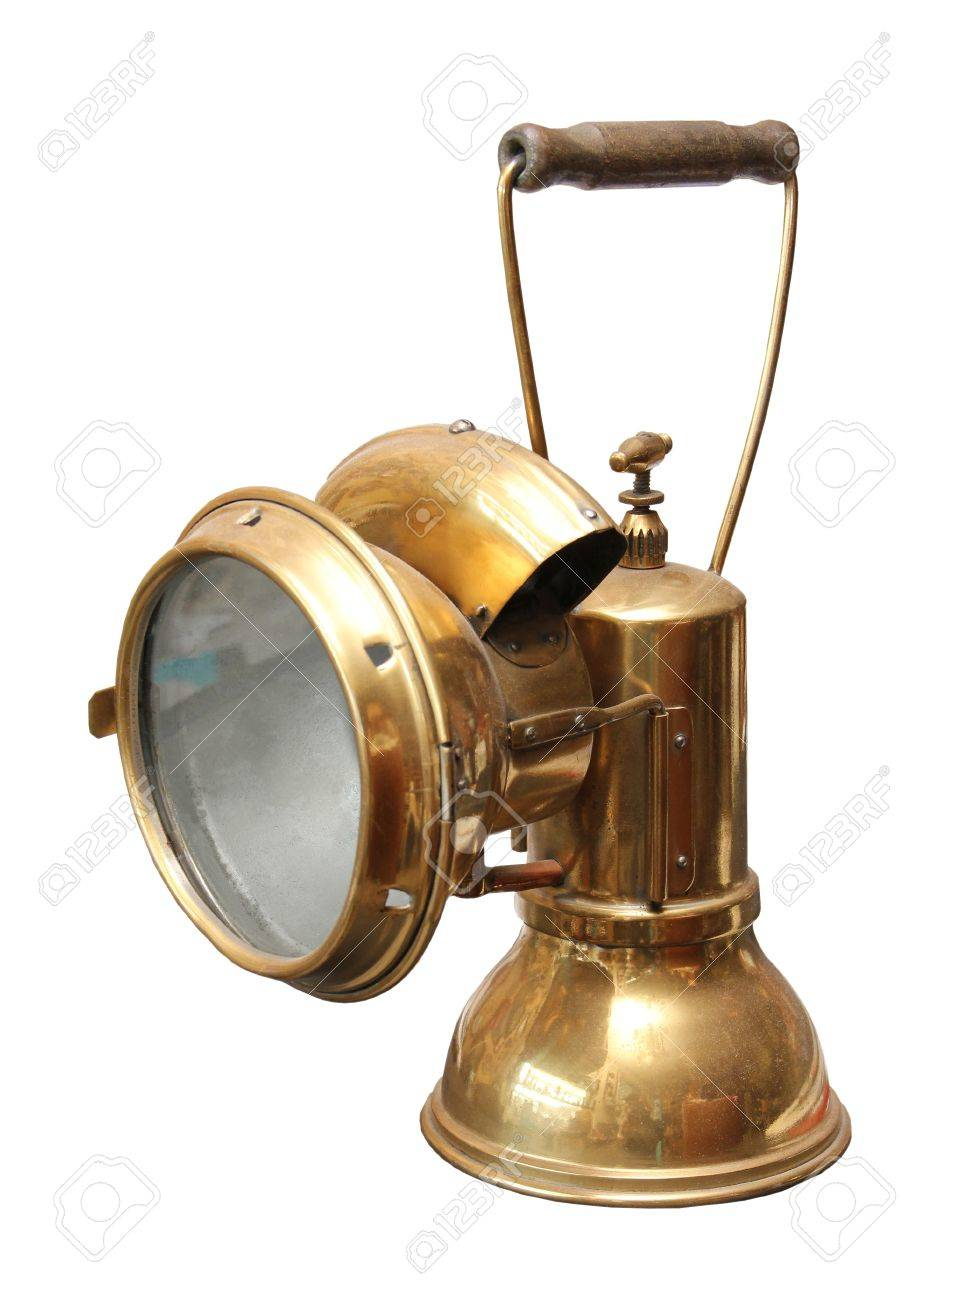 Old Copper Miner Carbide Lamp On A White Background. Stock Photo   7095178